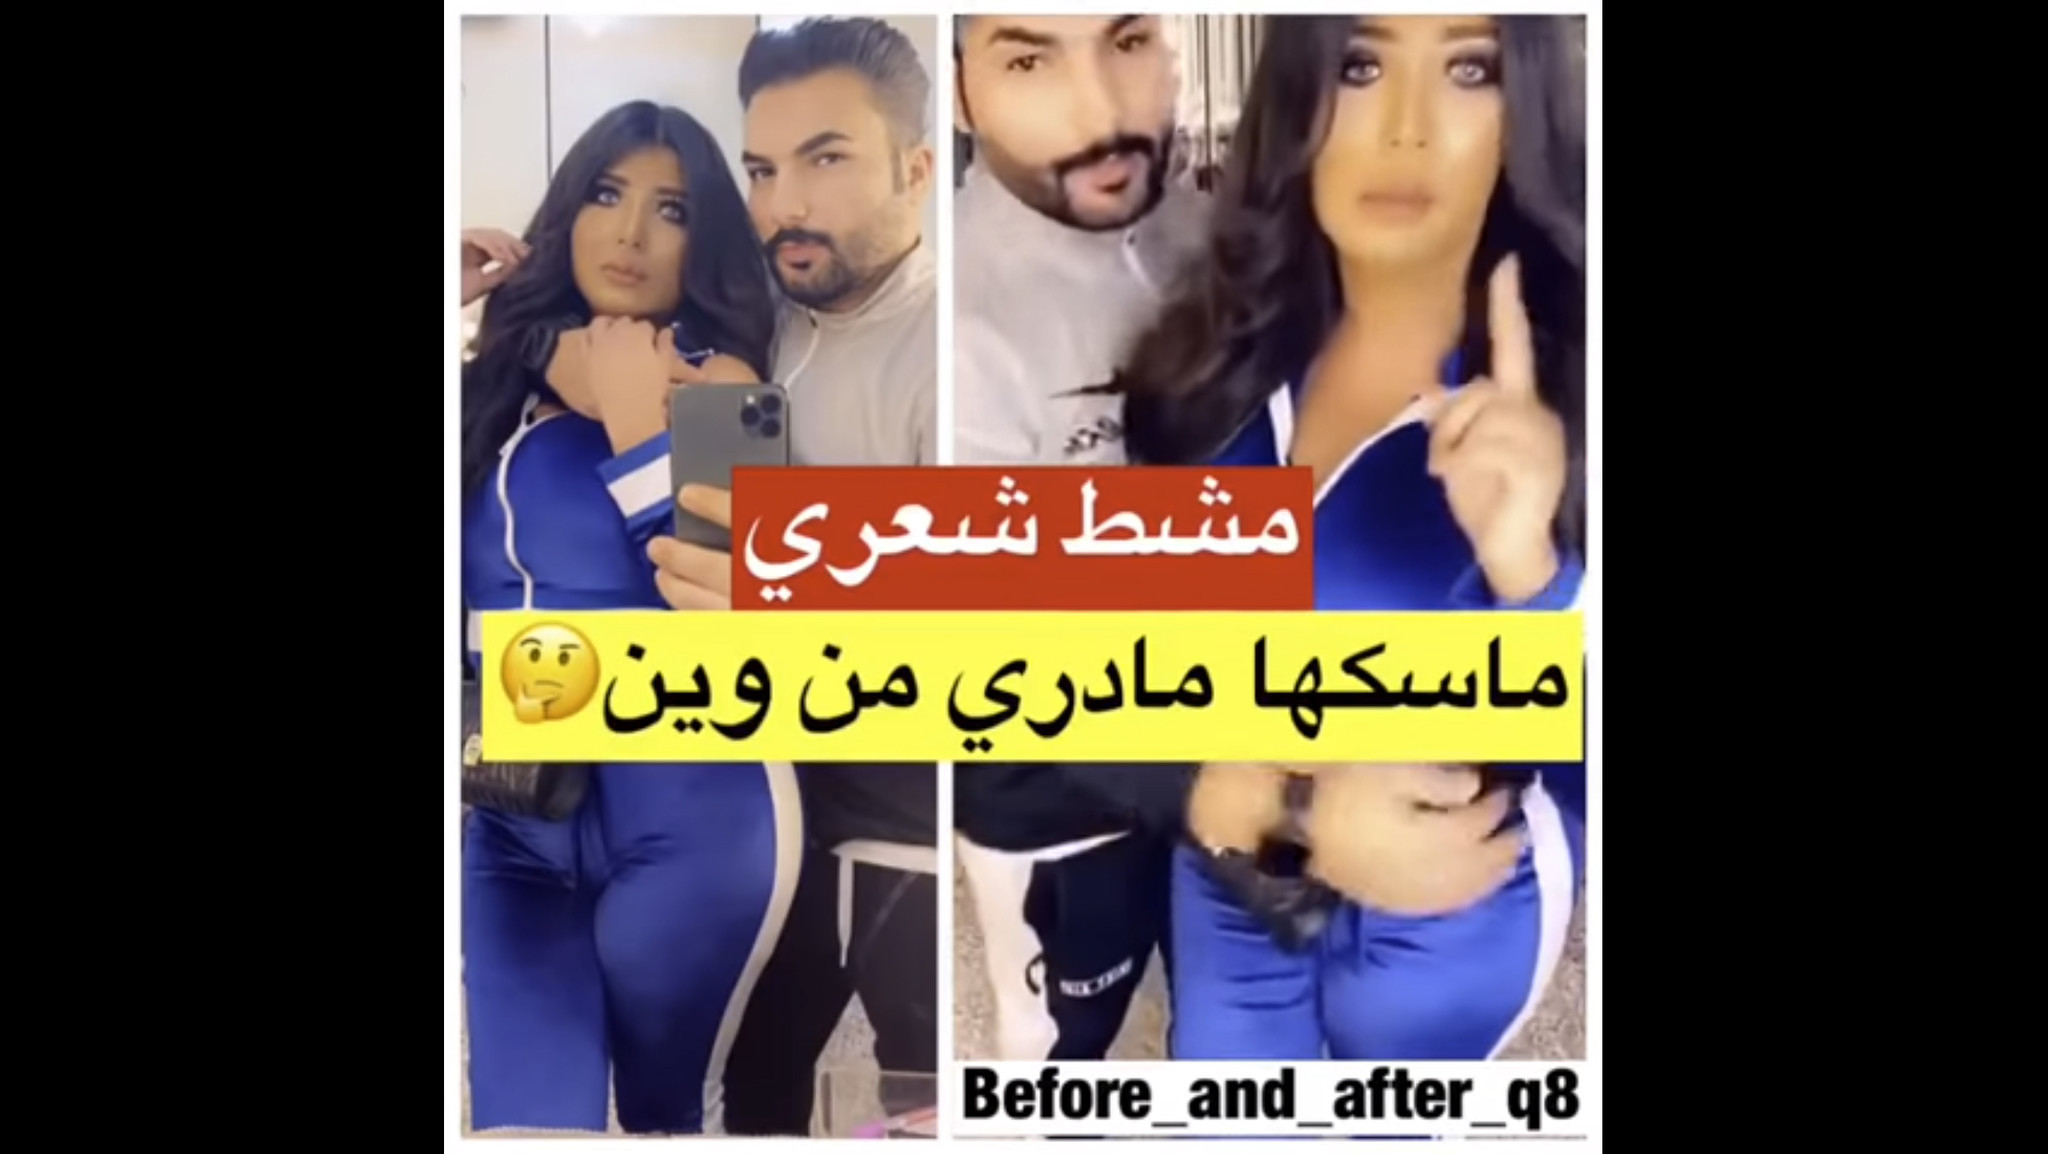 Kuwait arrests married couple for 'immoral' video